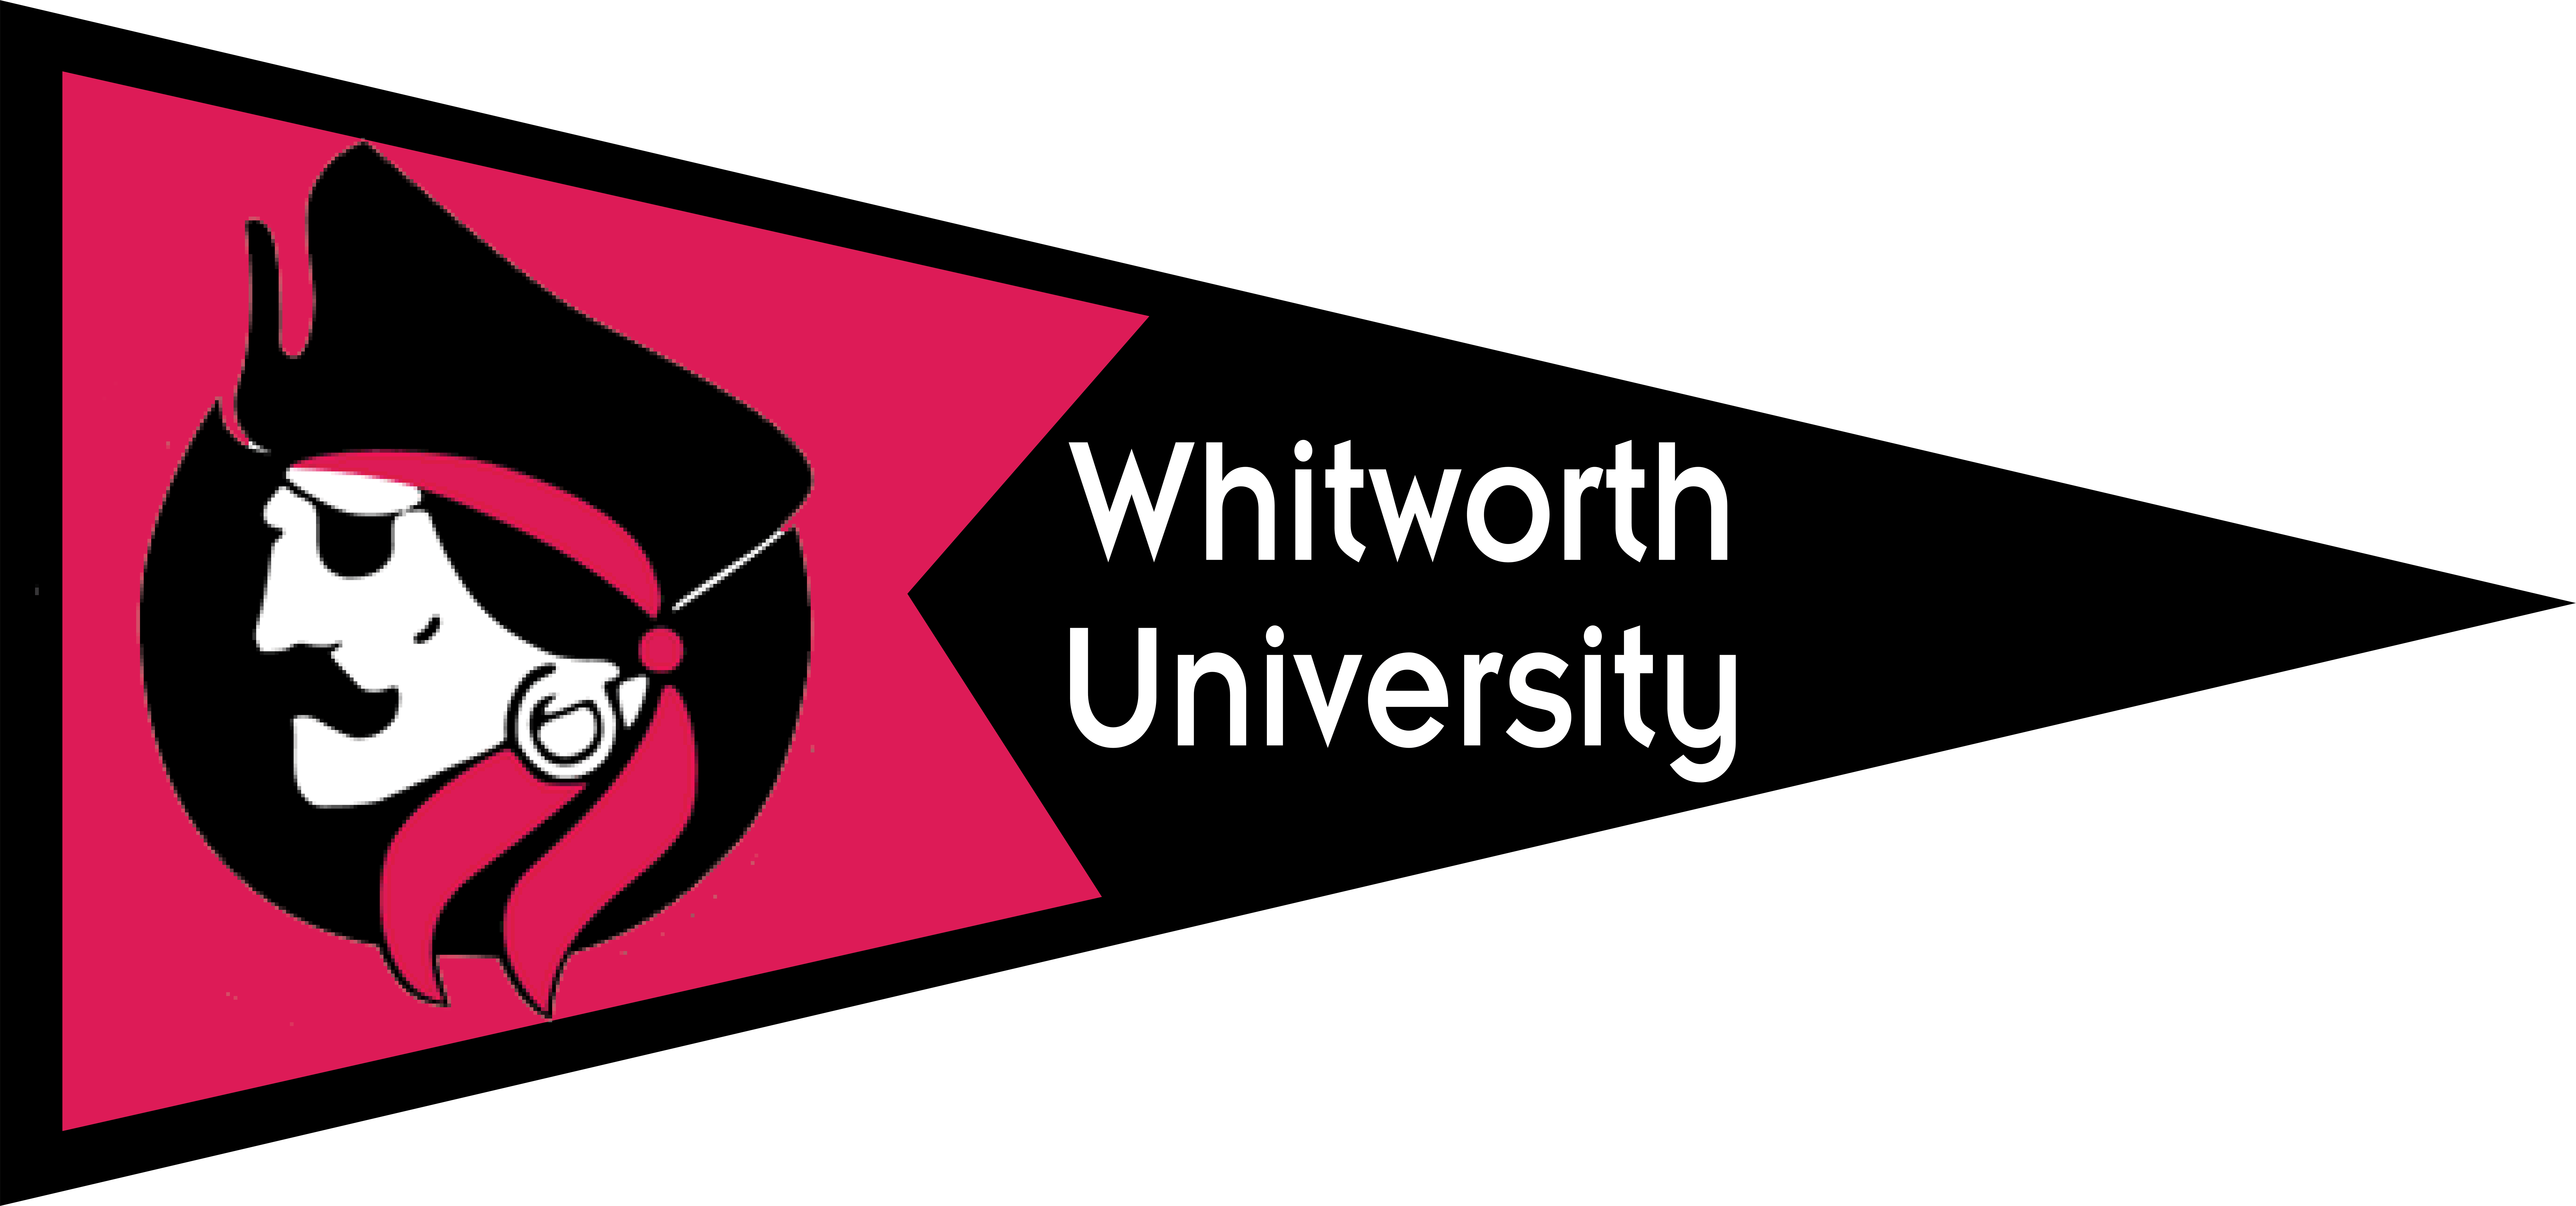 Baseball pennant clipart svg library download Whitworth University Pennant | GEAR UP svg library download